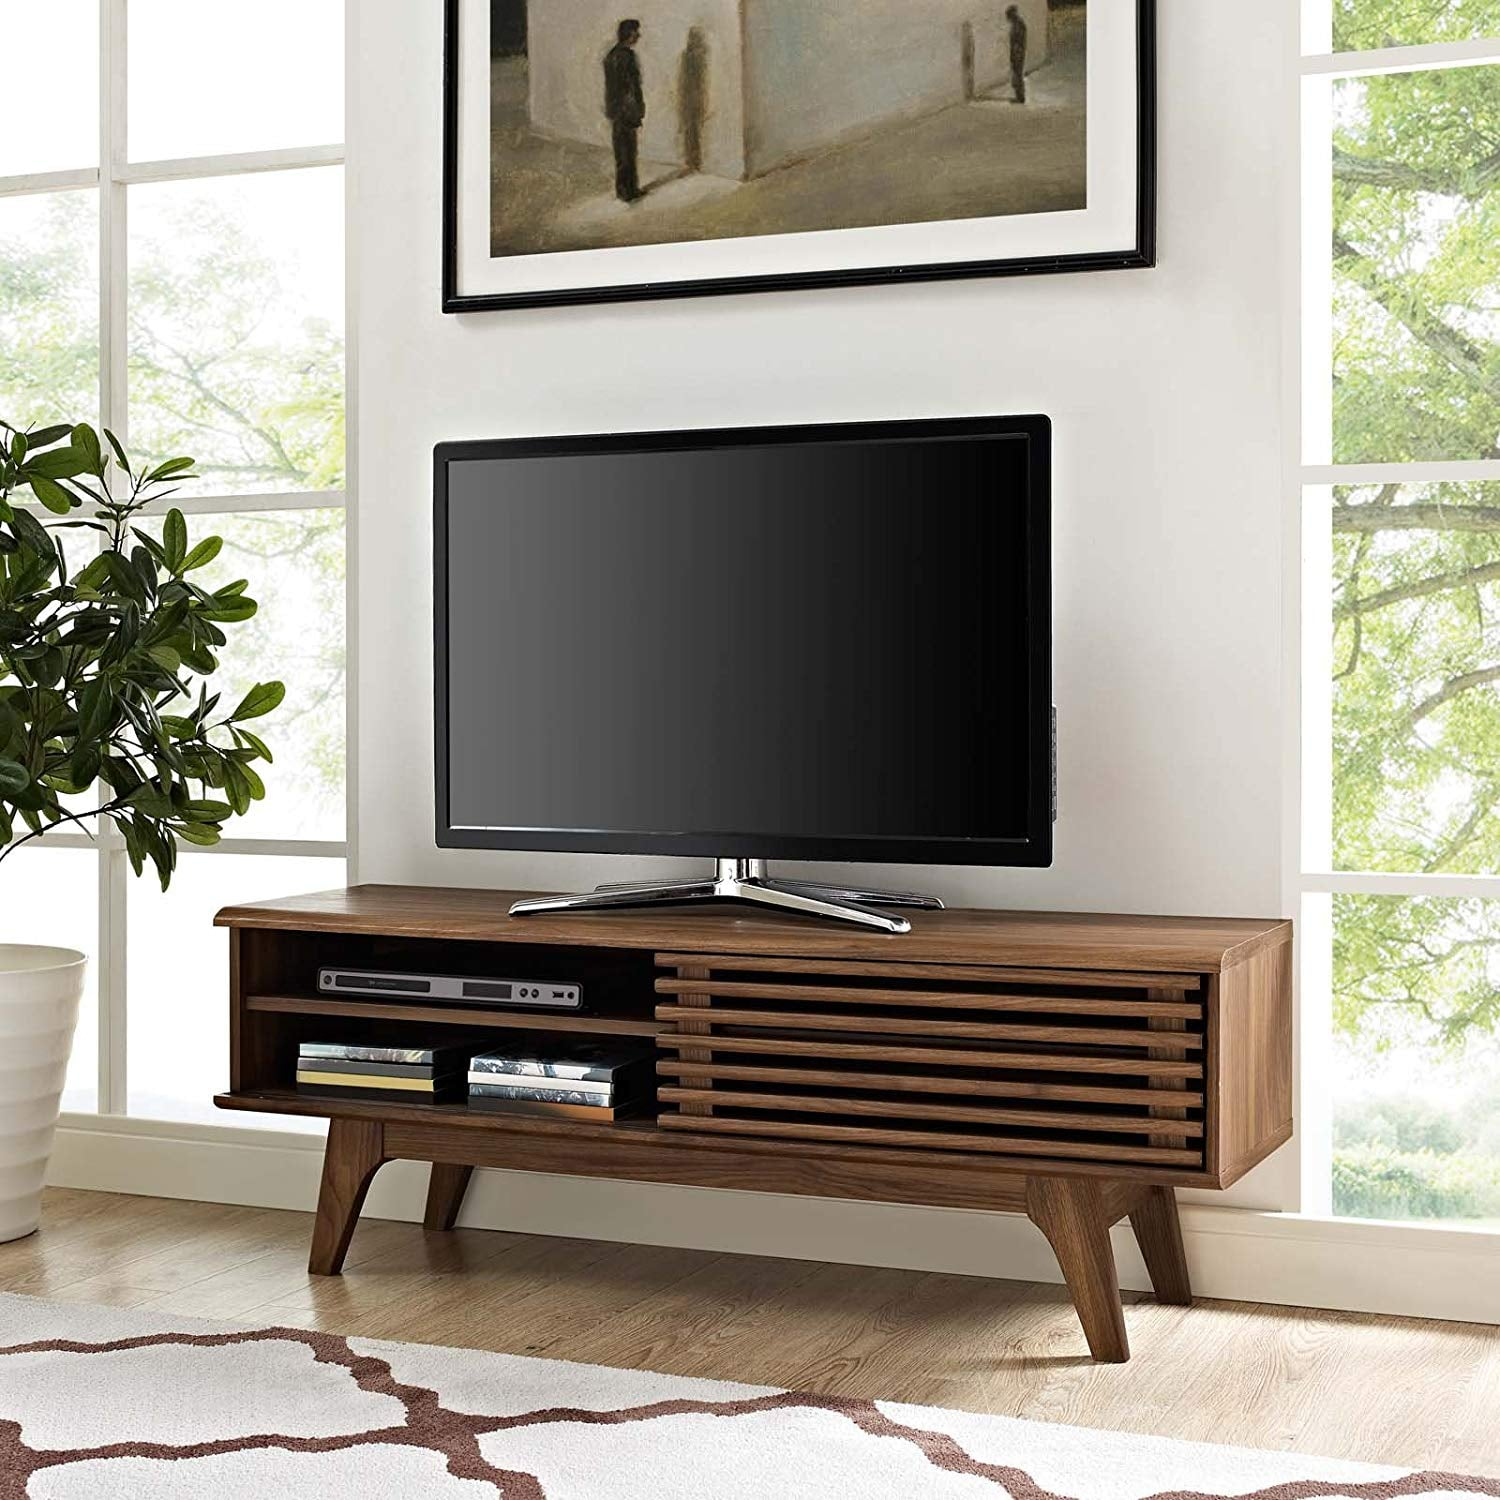 competitive price 4e27f 17d8f Best TV Stands From Amazon | POPSUGAR Home